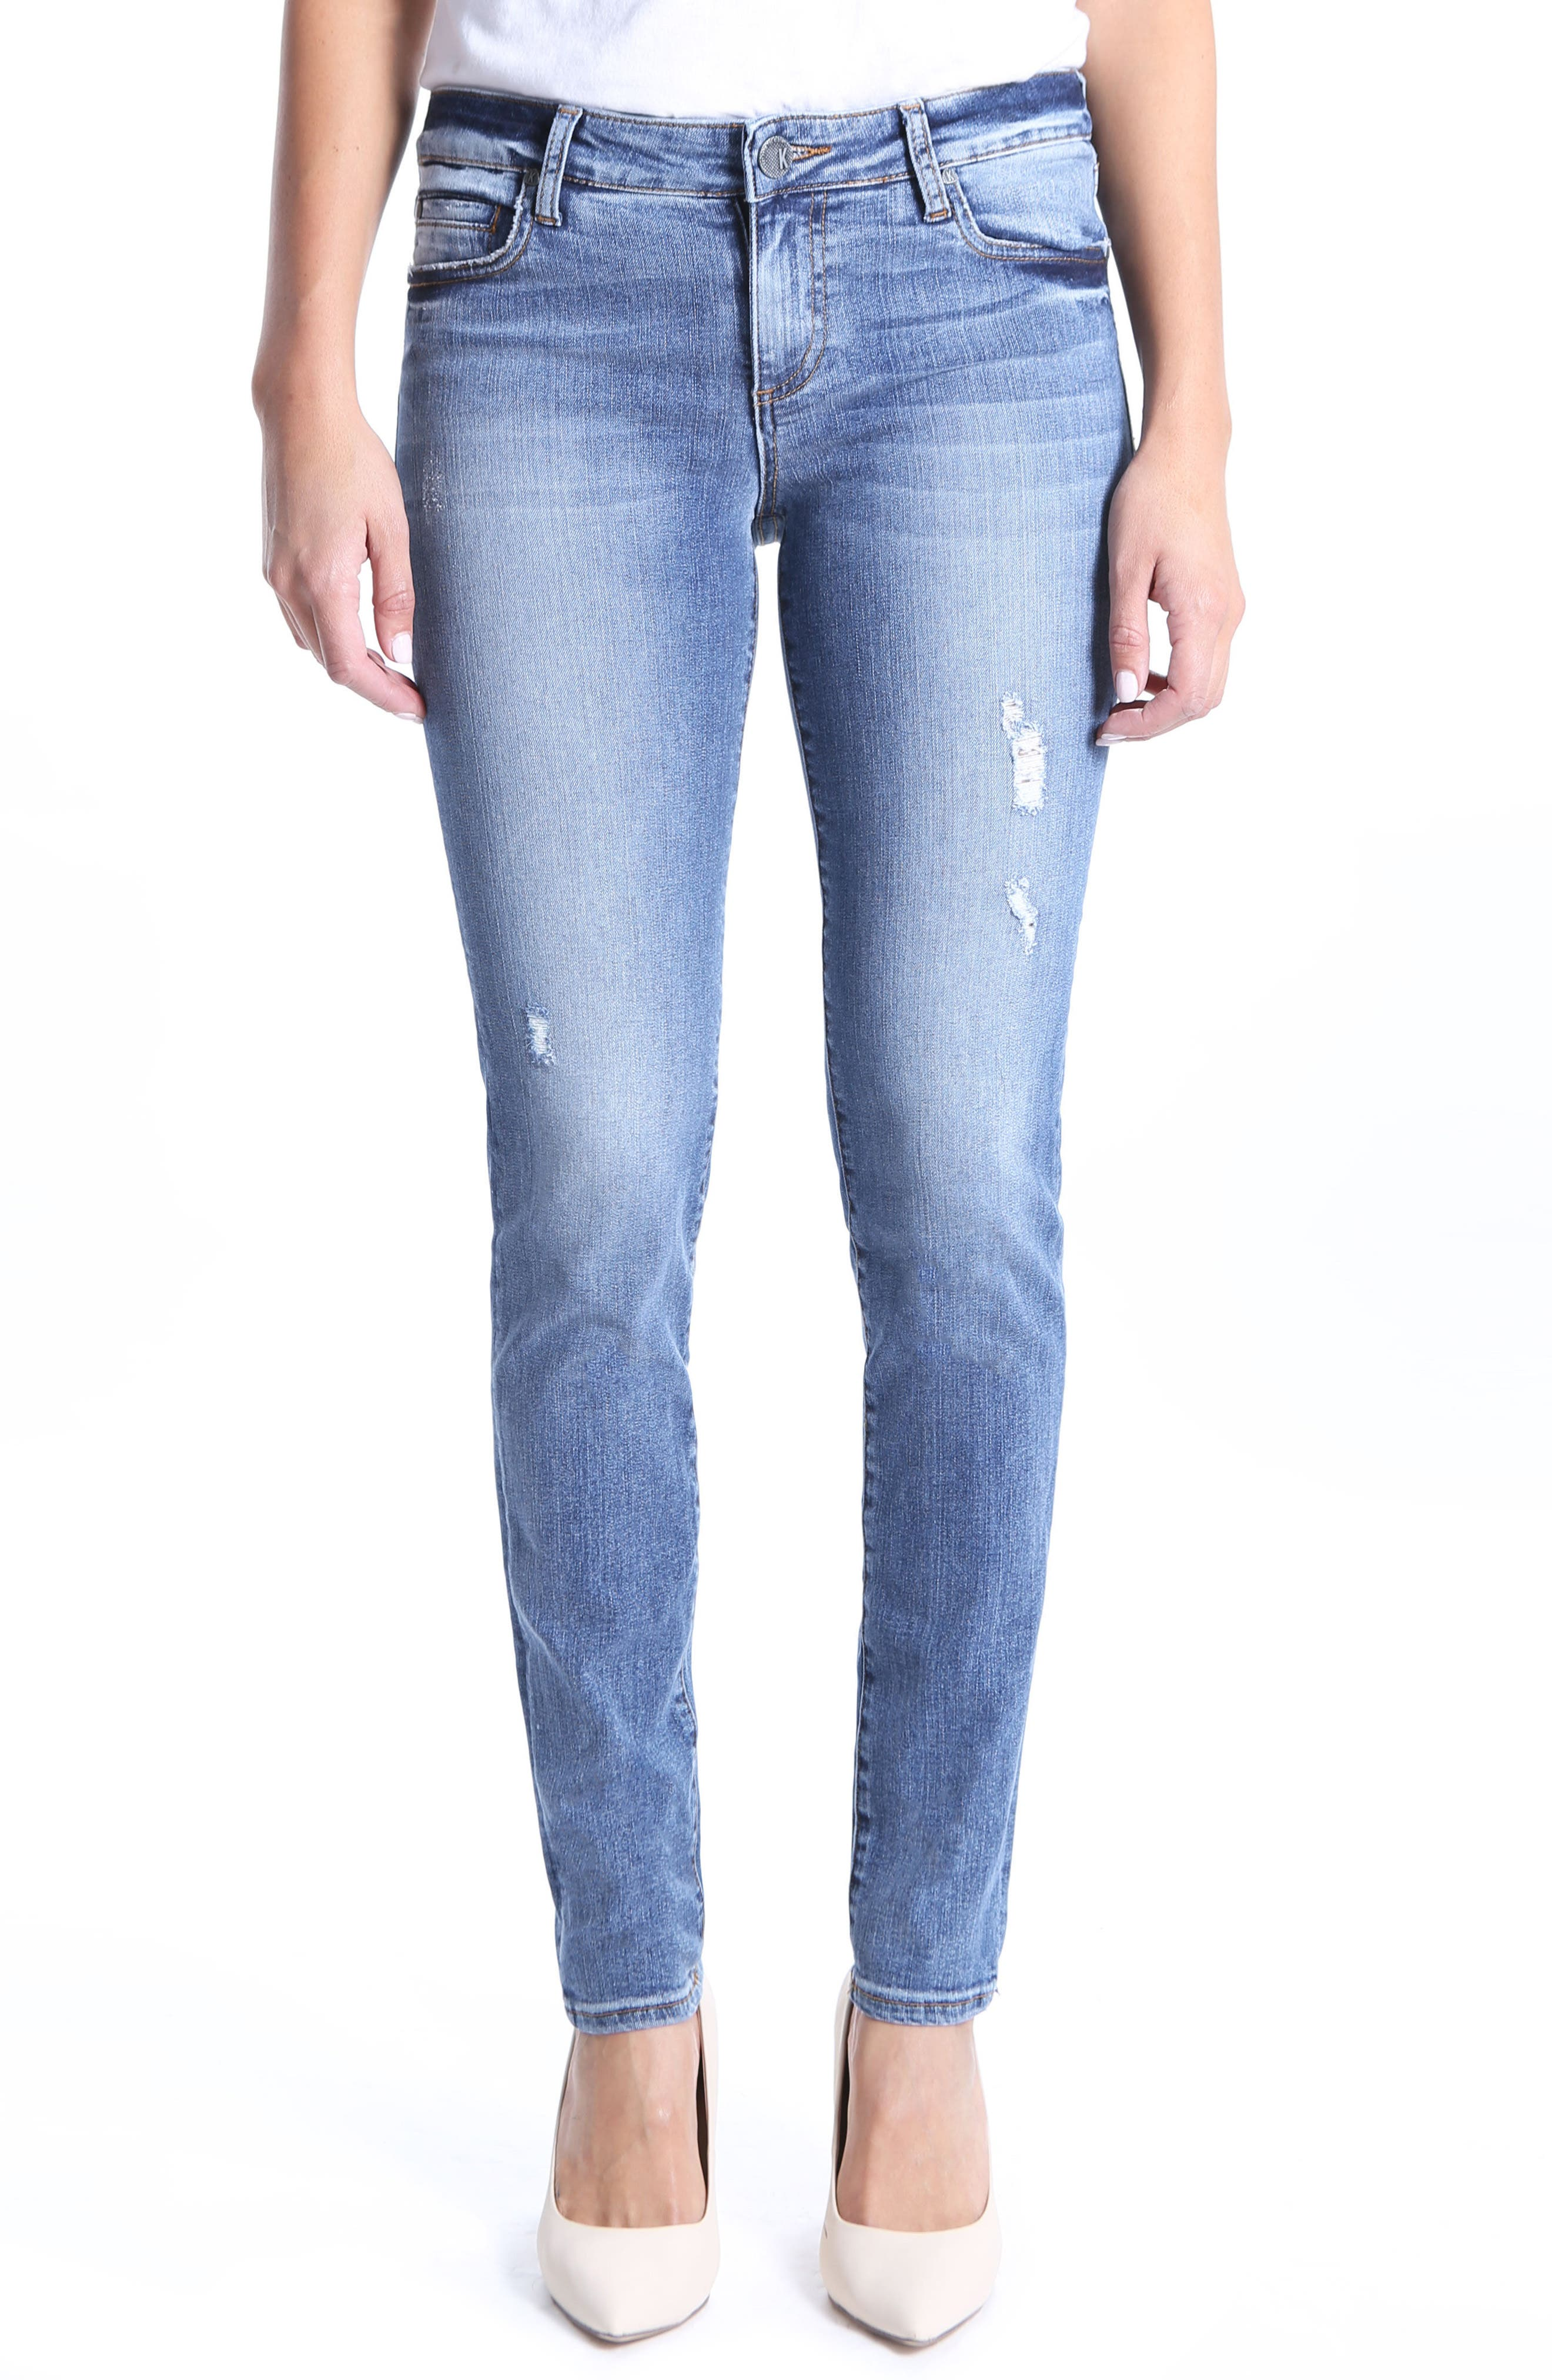 Diana Stretch Skinny Jeans,                             Main thumbnail 1, color,                             453